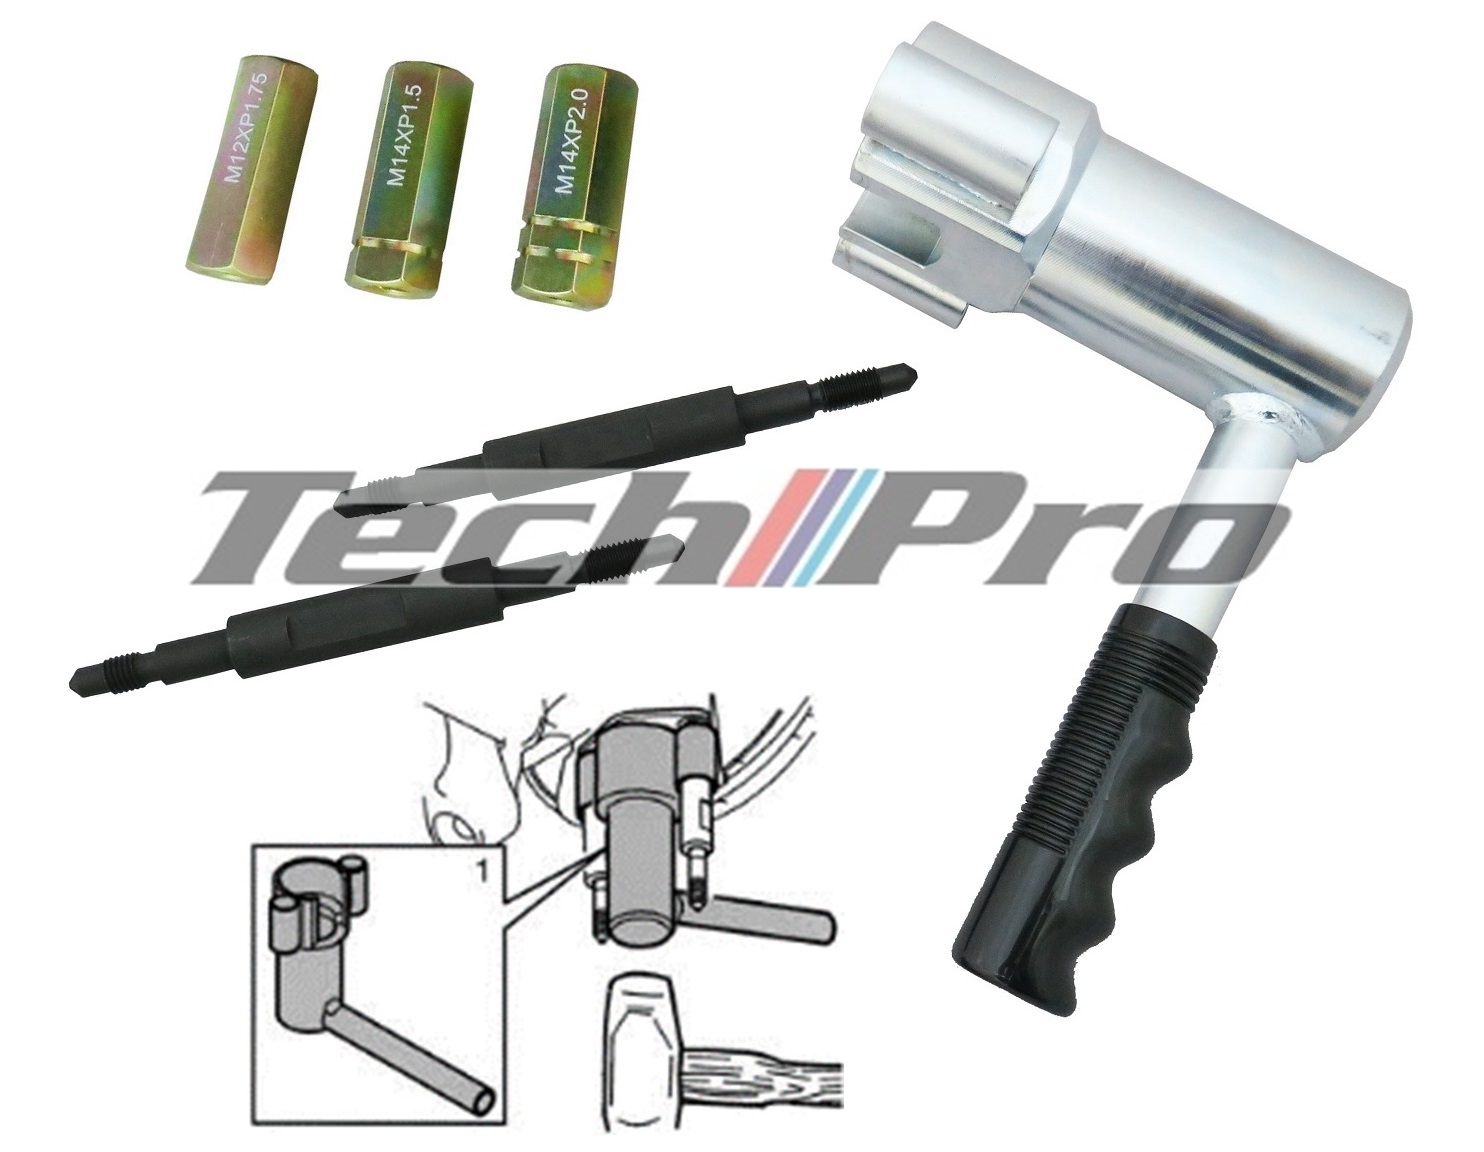 VO-004 VOLVO - Ball Joint R & I Tool